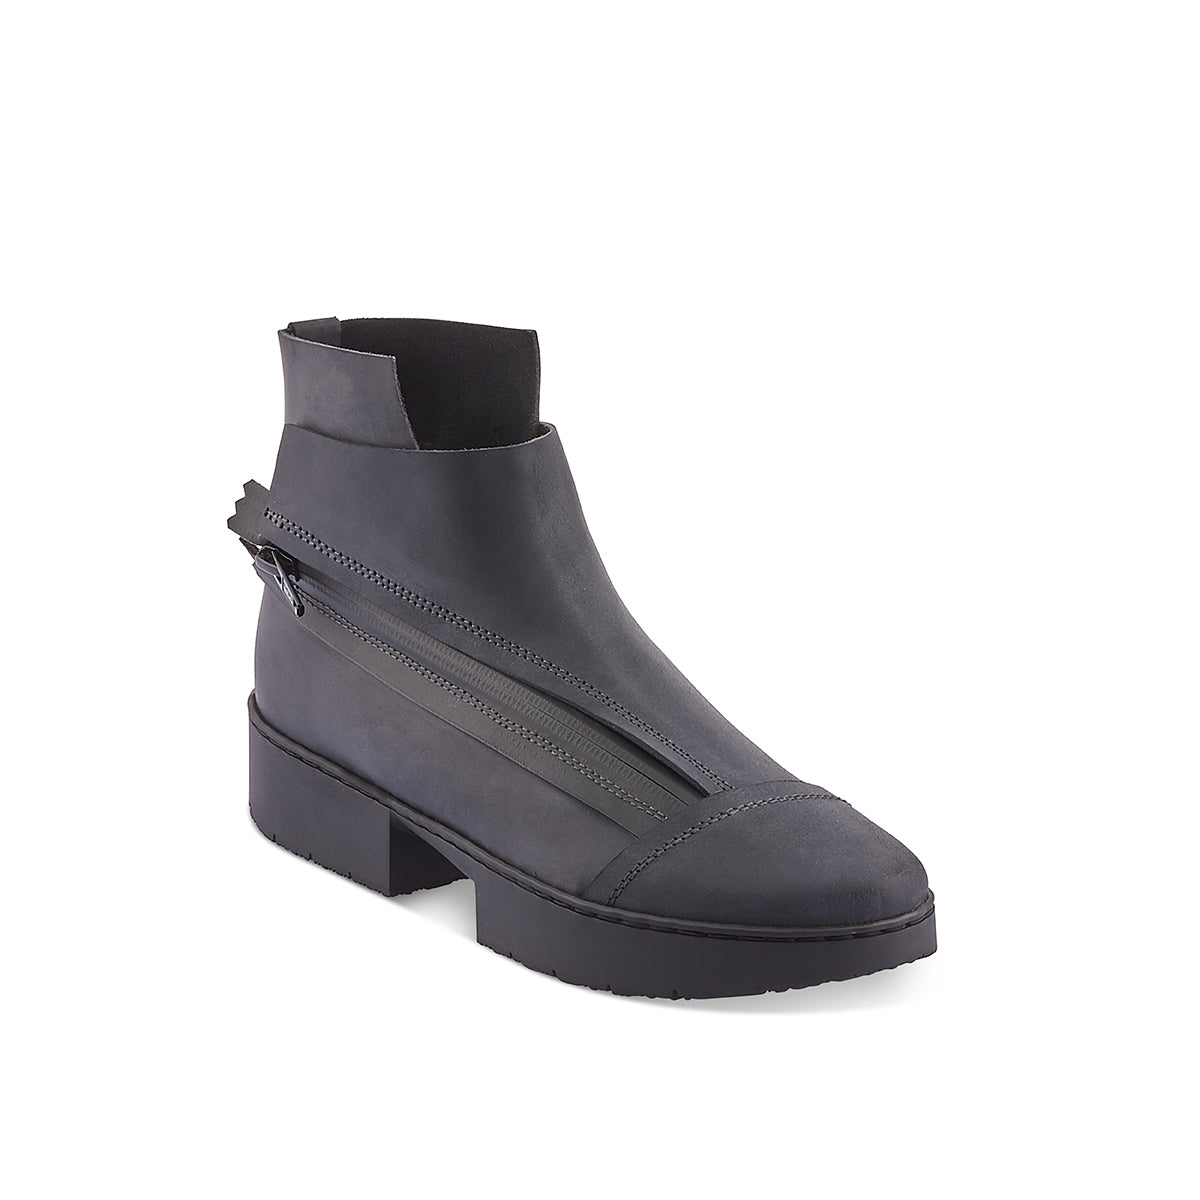 An ultra-modern ankle boot crafted from lightly oiled leather, Immature sits atop the flat-form 'sport' sole. The angular zip is covered with a stitched rubber section and the leather upper wraps around the ankle, creating dynamic lines and a sculptural silhouette.